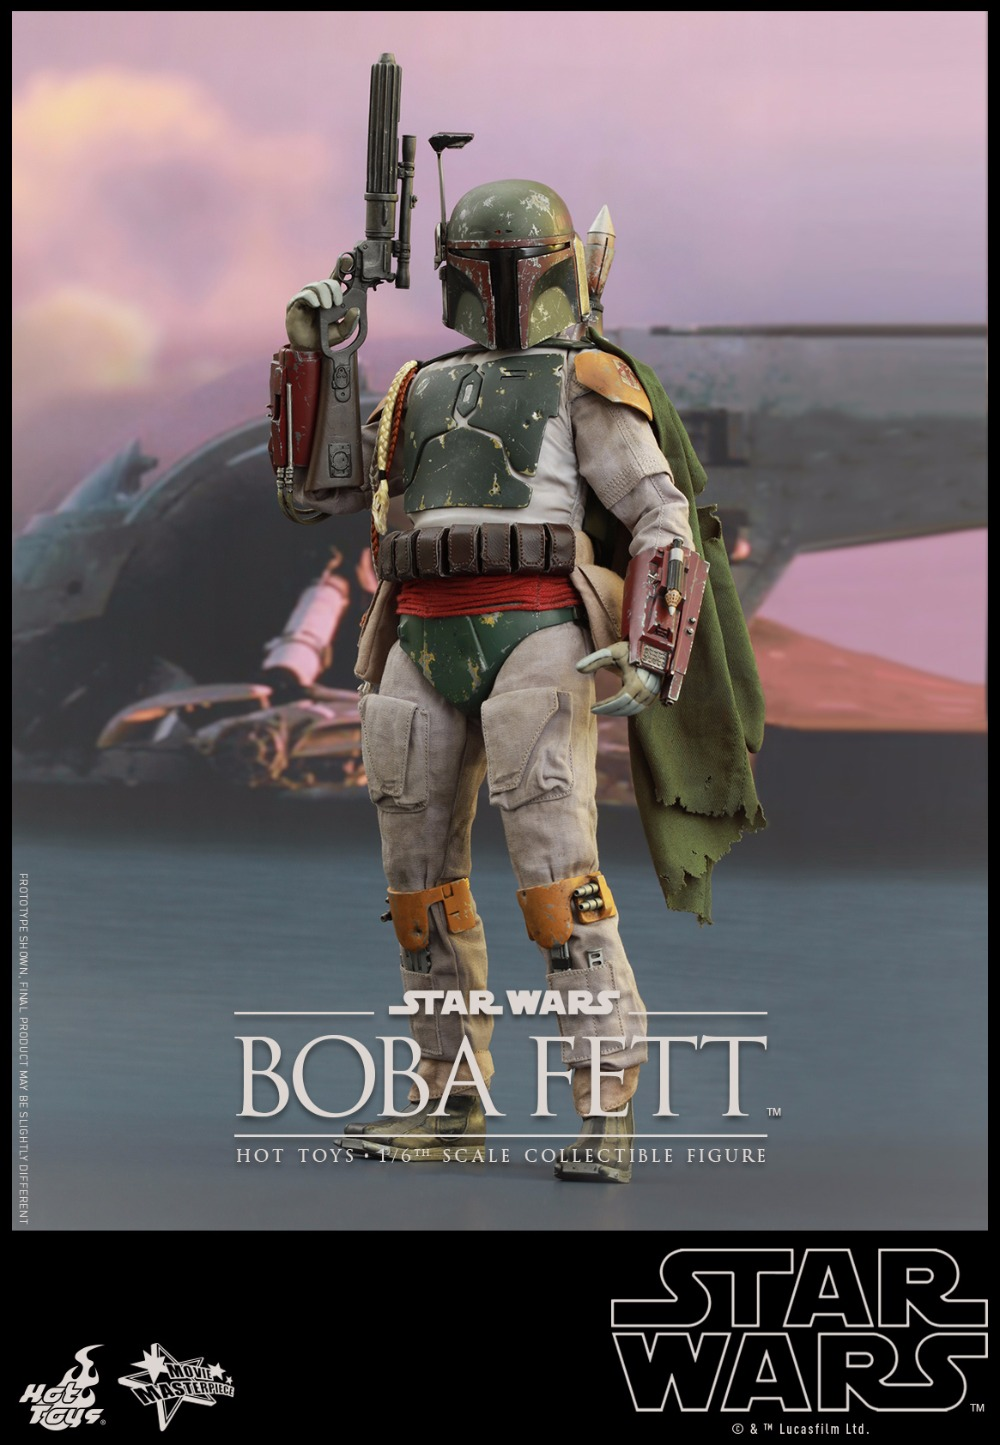 1/6 scale figure doll Star Wars Episode VI-Return of the Jedi boba fett 12 action figure doll Collectible Figure model toys аксессуары для акустики episode es 500 iwlcr 6